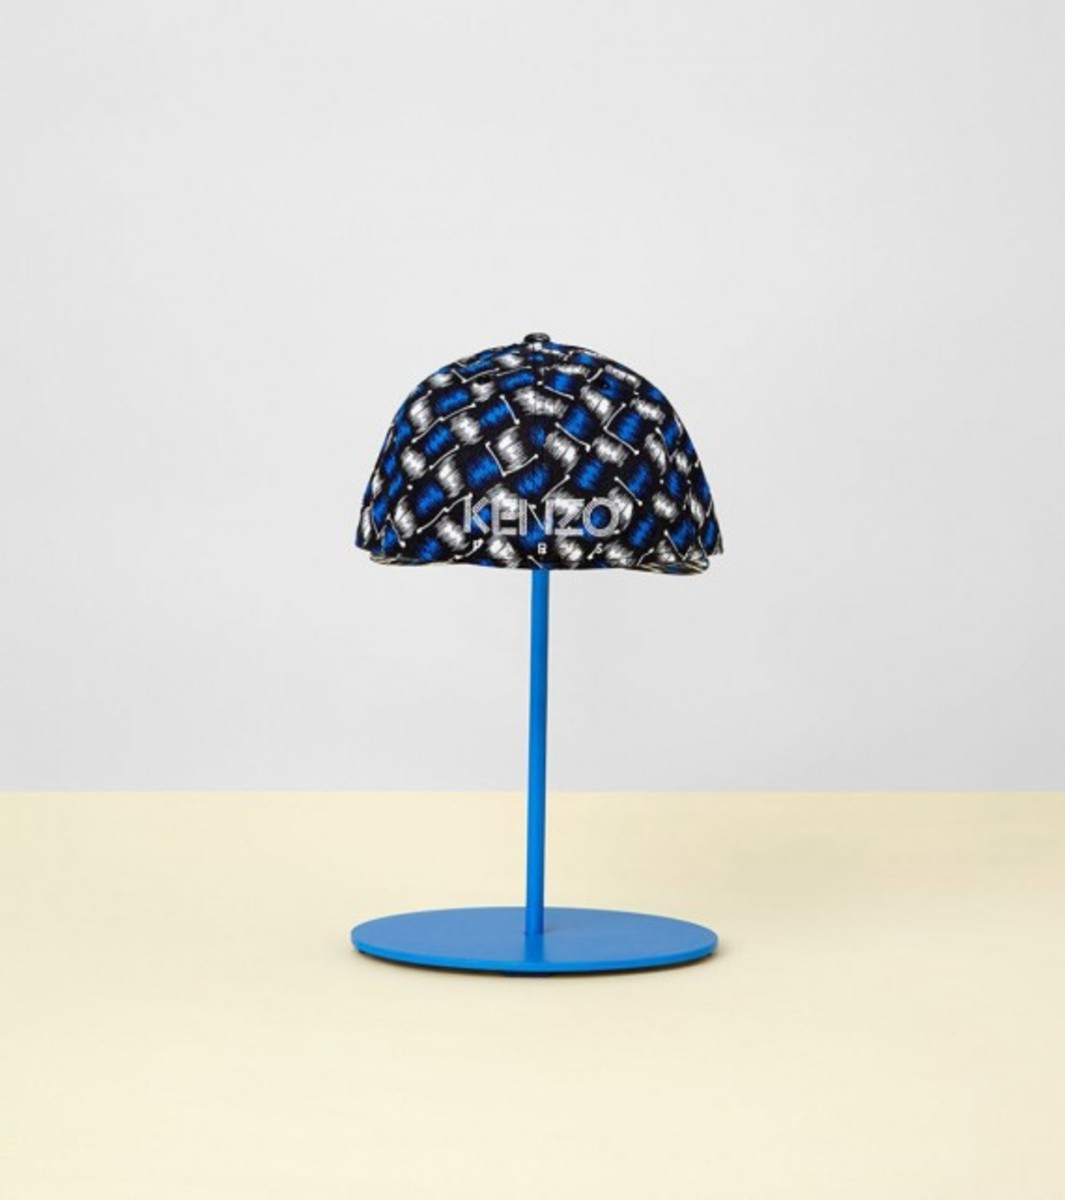 kenzo-new-era-spring-summer-2013-cap-collection-07